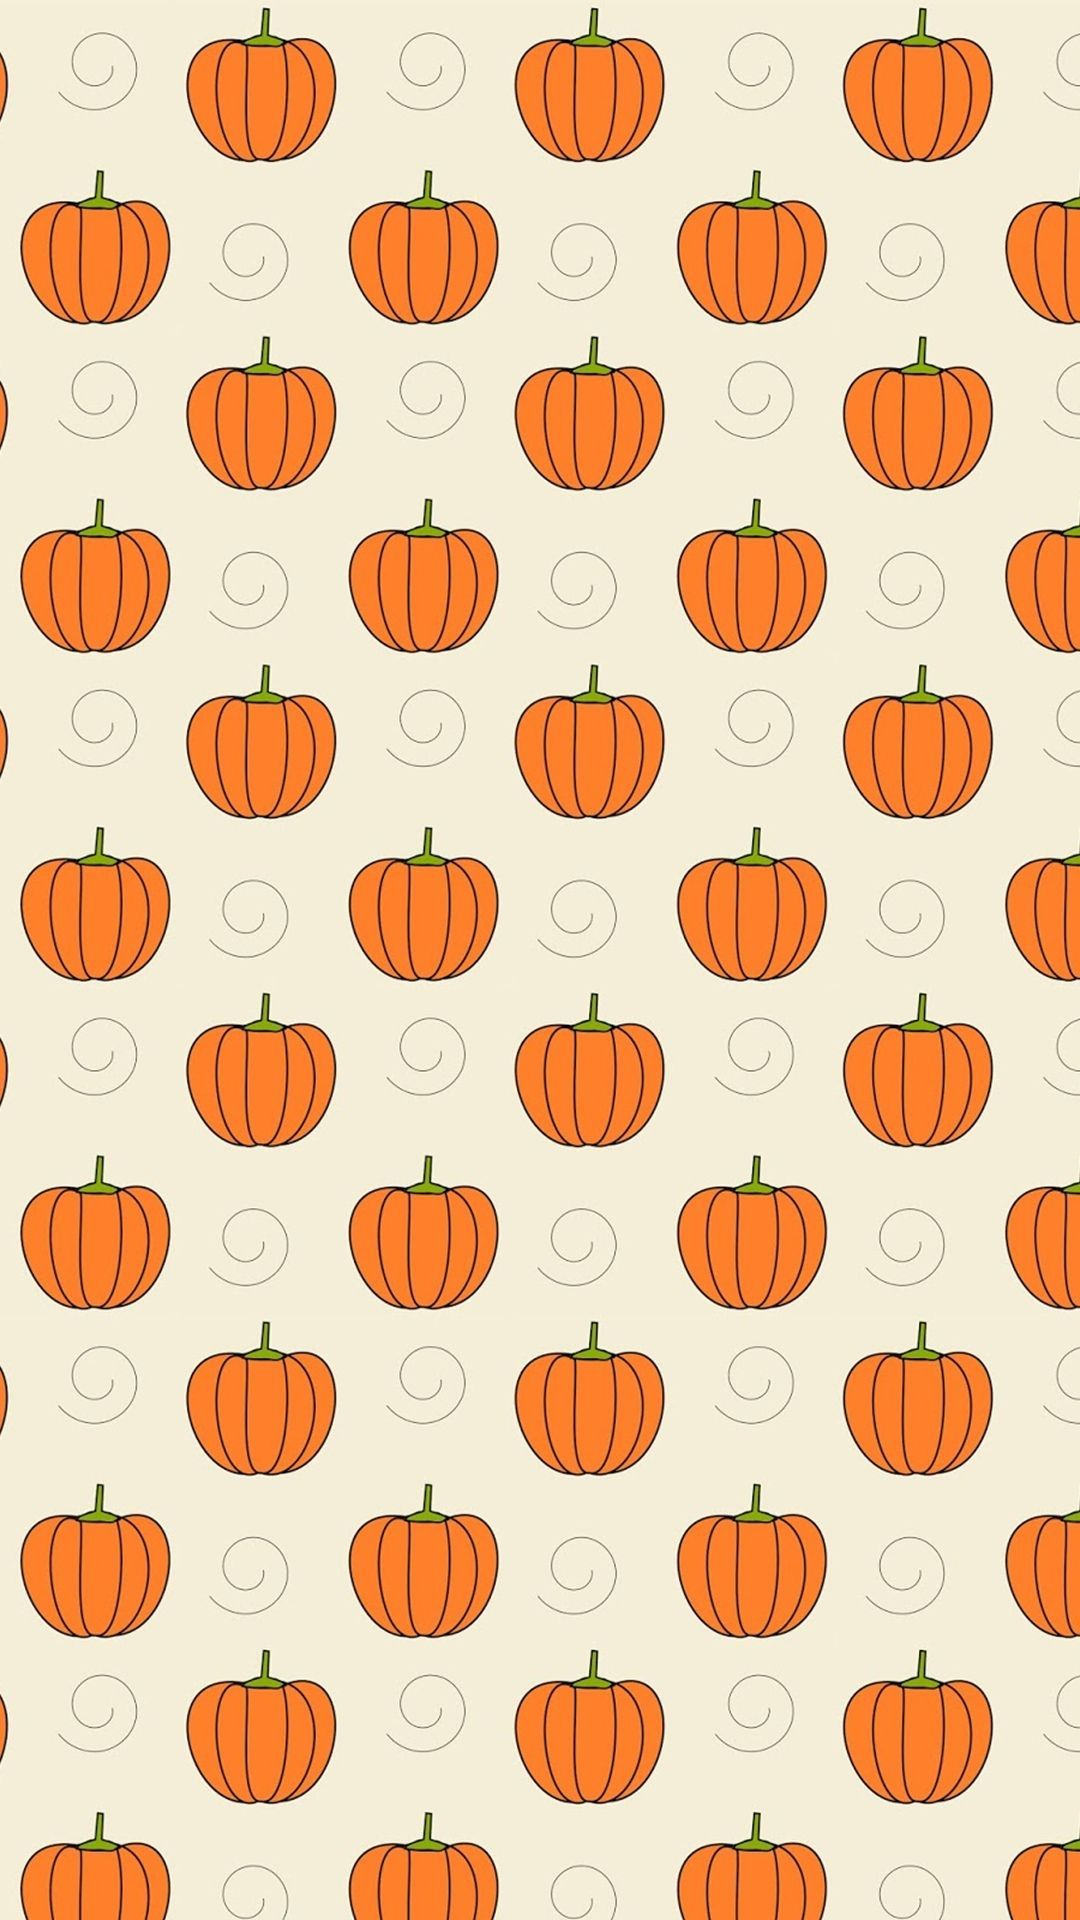 Pumpkins Tap To See More Cute Halloween Wallpaper Mobile9 Awesome Pretty Wallpapers In 2020 Cute Fall Wallpaper Pumpkin Wallpaper Halloween Wallpaper